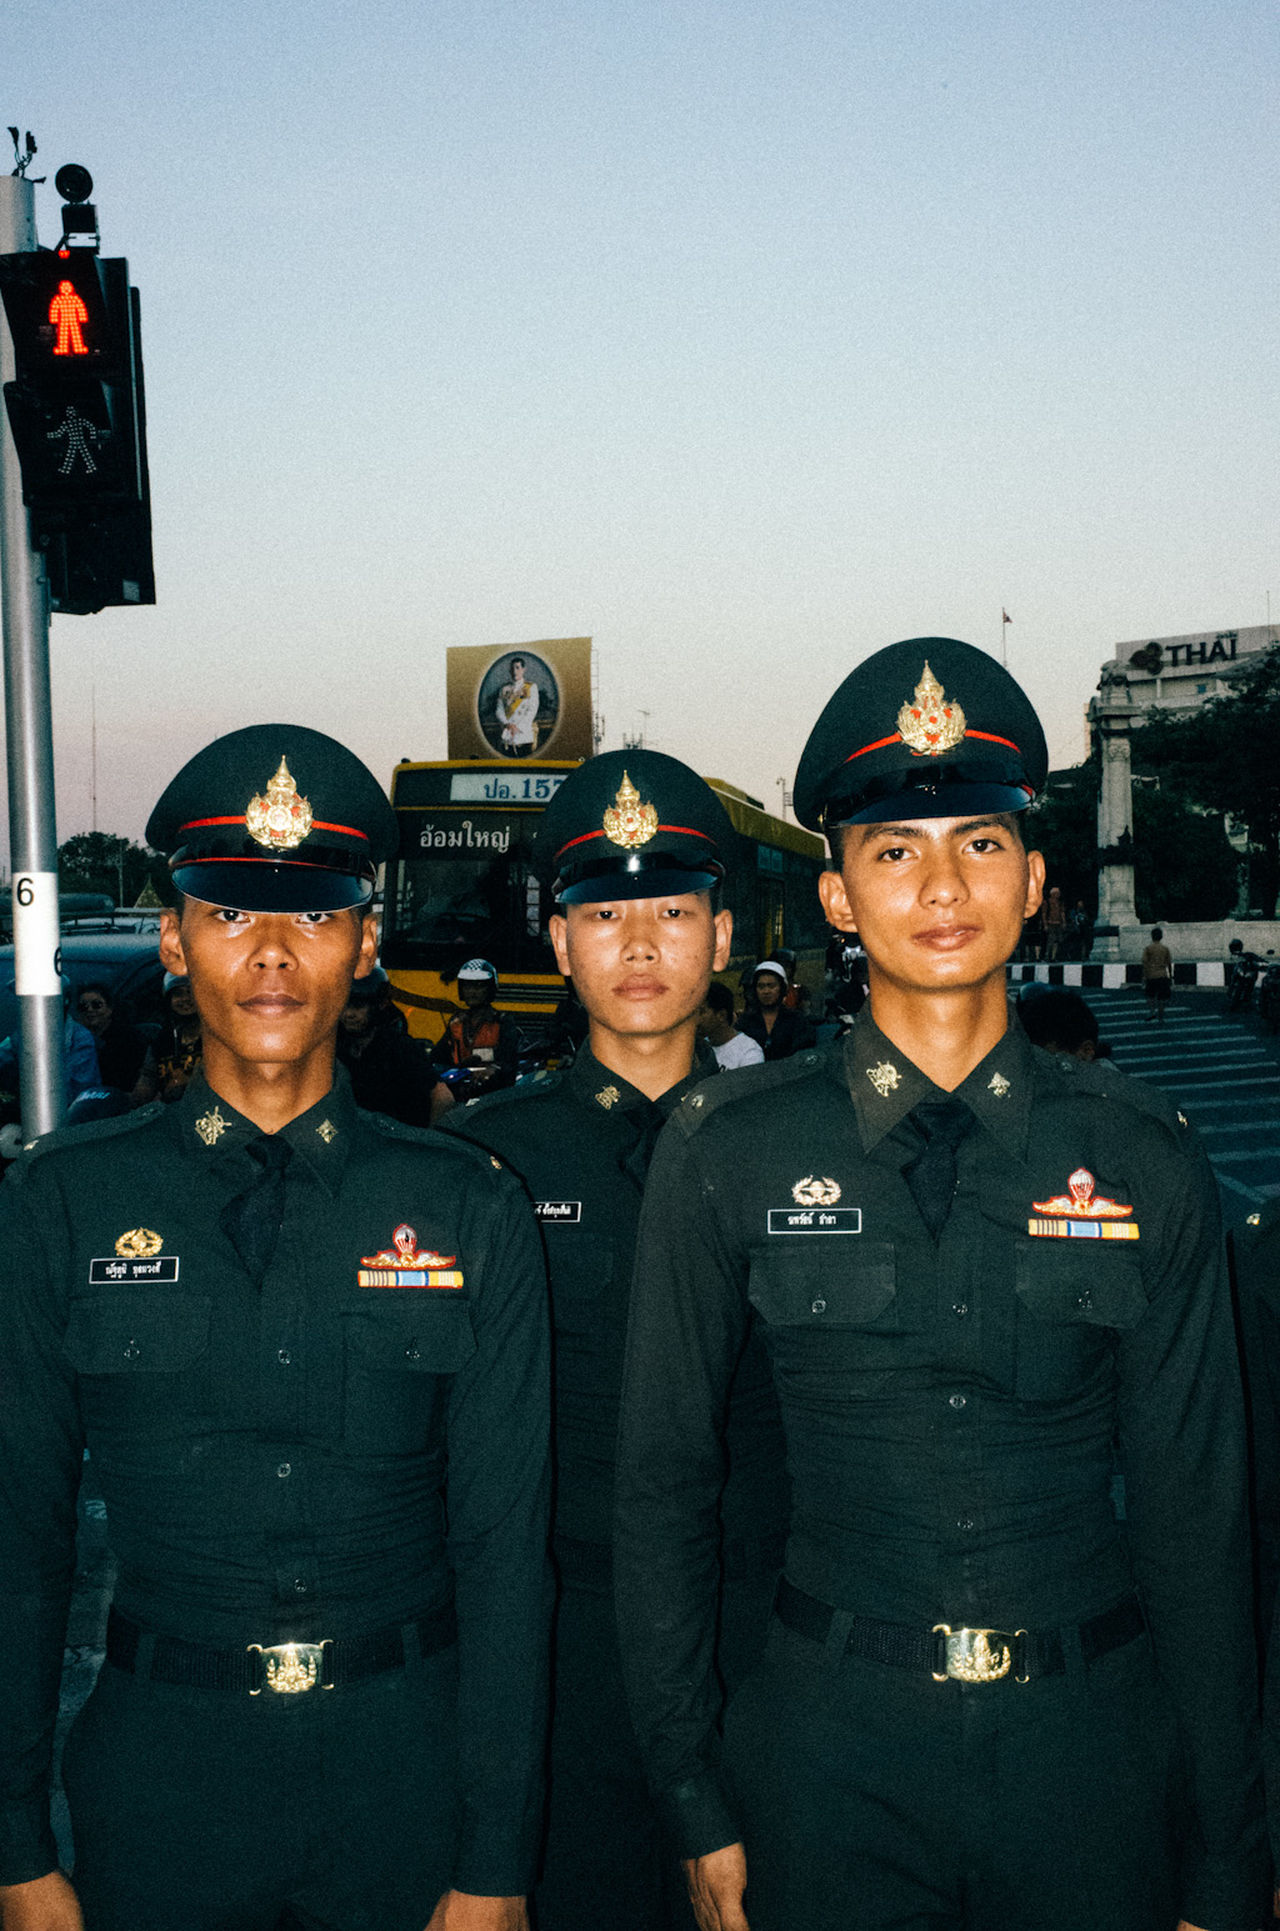 amazing Authority dapper group of people men military uniform only men police force portrait streetphotography streetportrait Thailand Uniform young adult